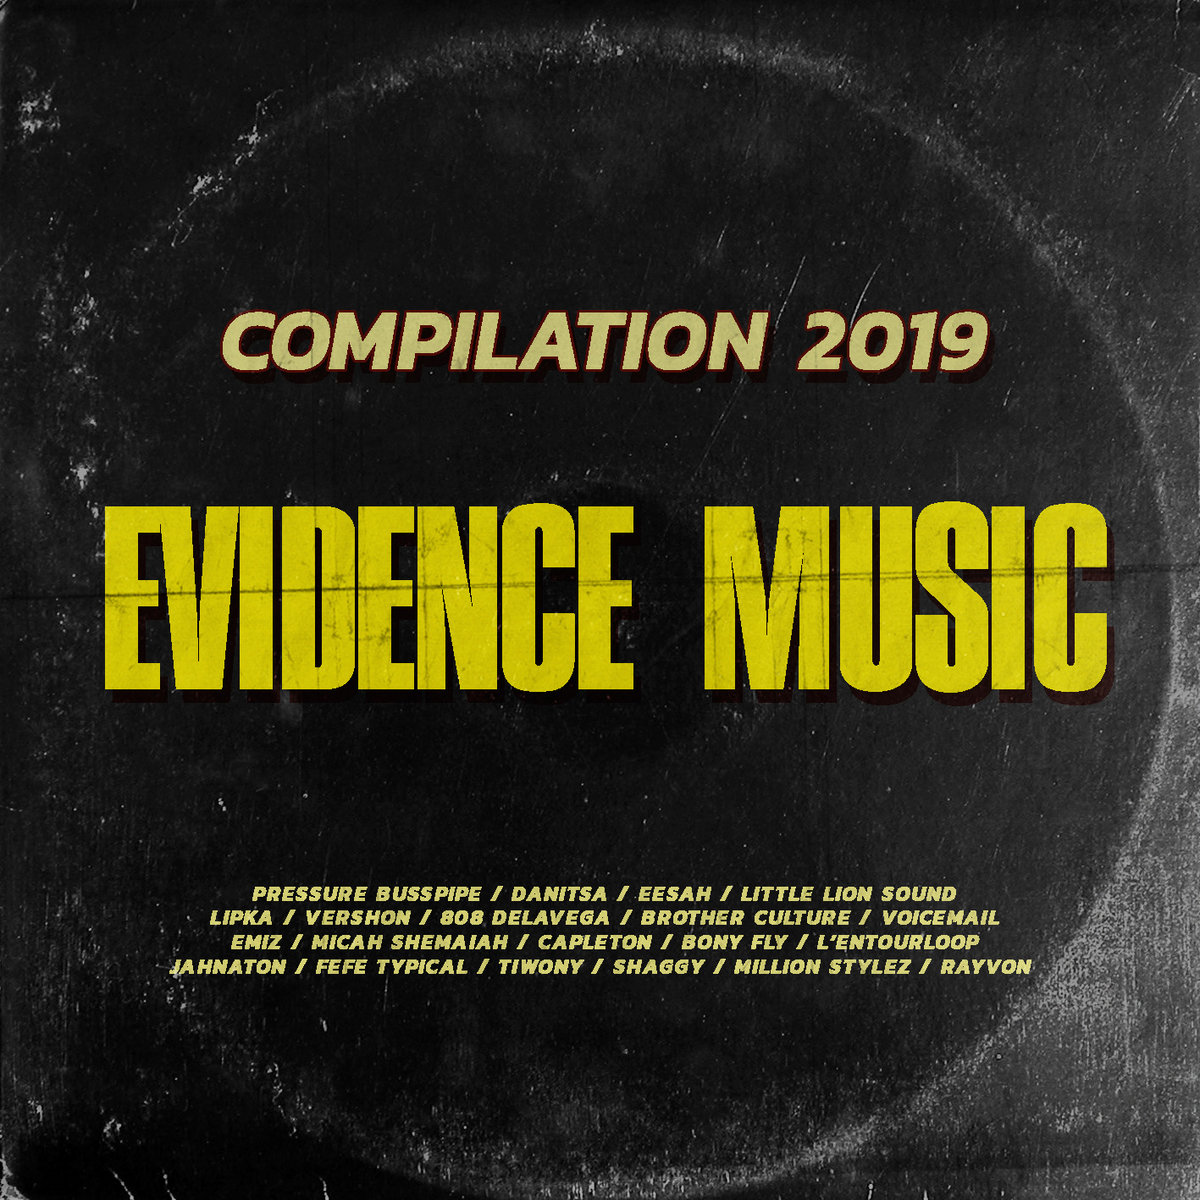 Evidence Music Compilation 2019 | Evidence Music